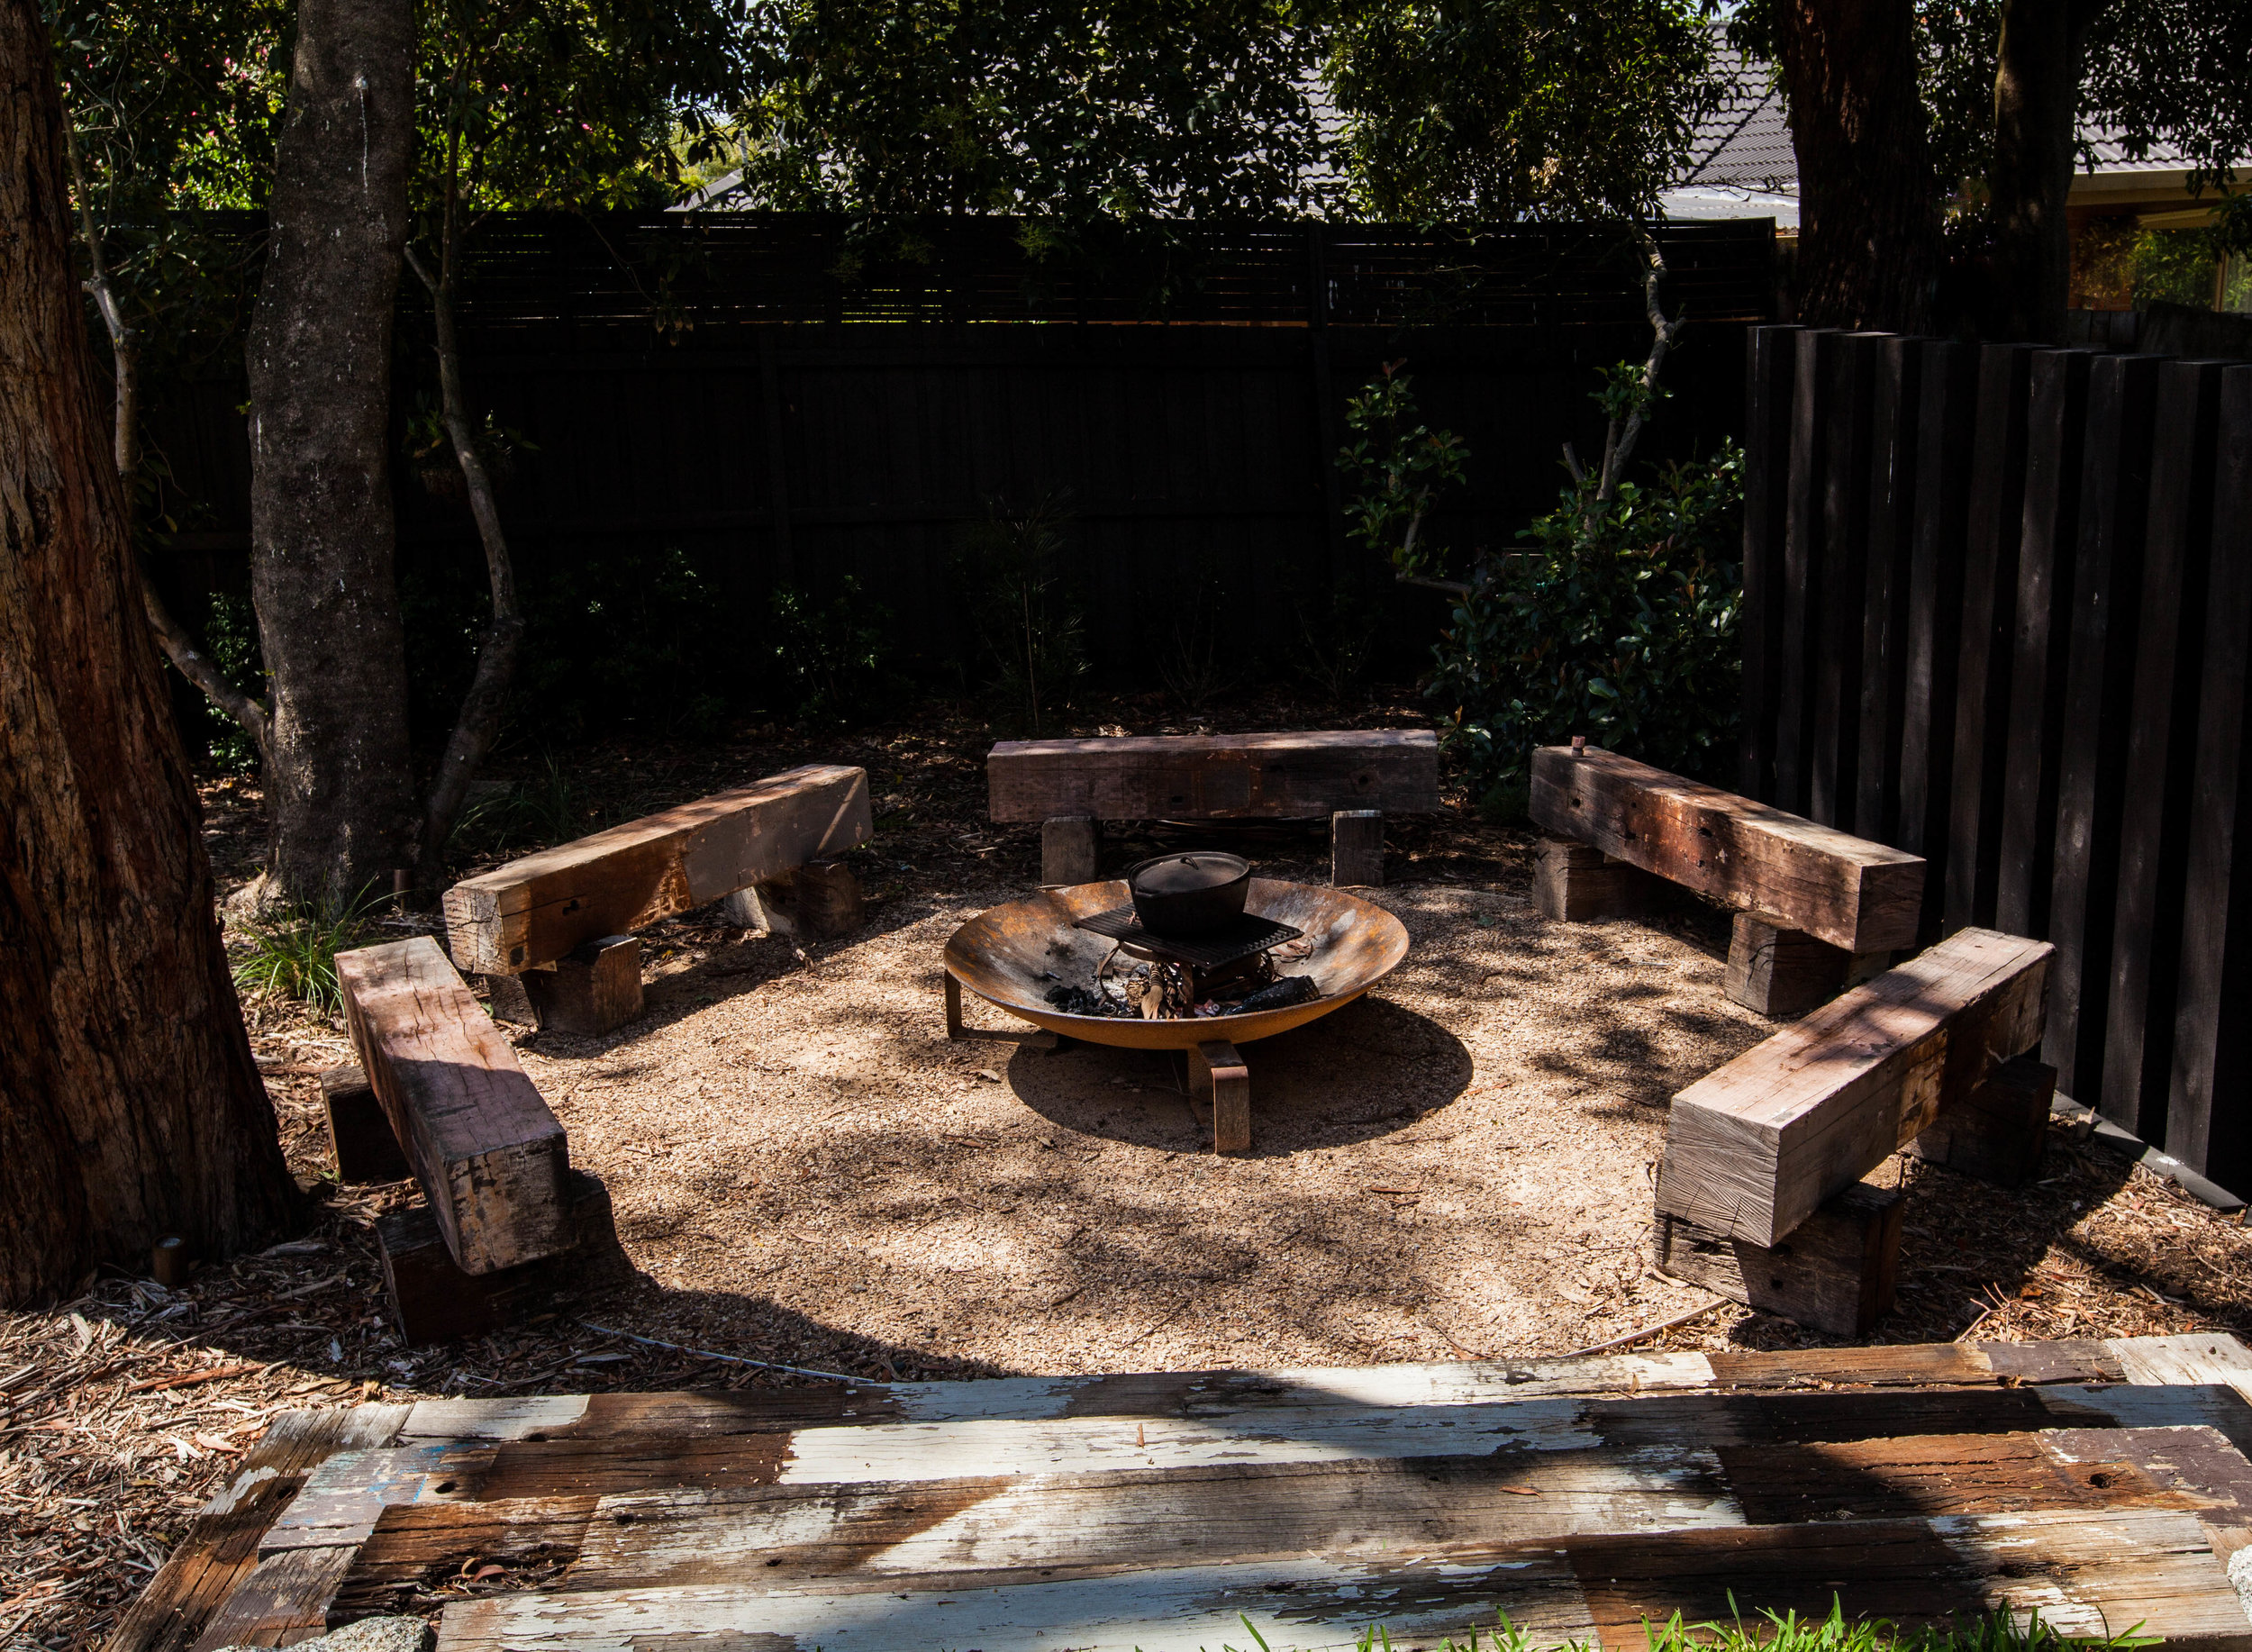 AFTER: The sunken 'campfire lounge'seating area, where smaller groups can site and chat over a crackling fire.